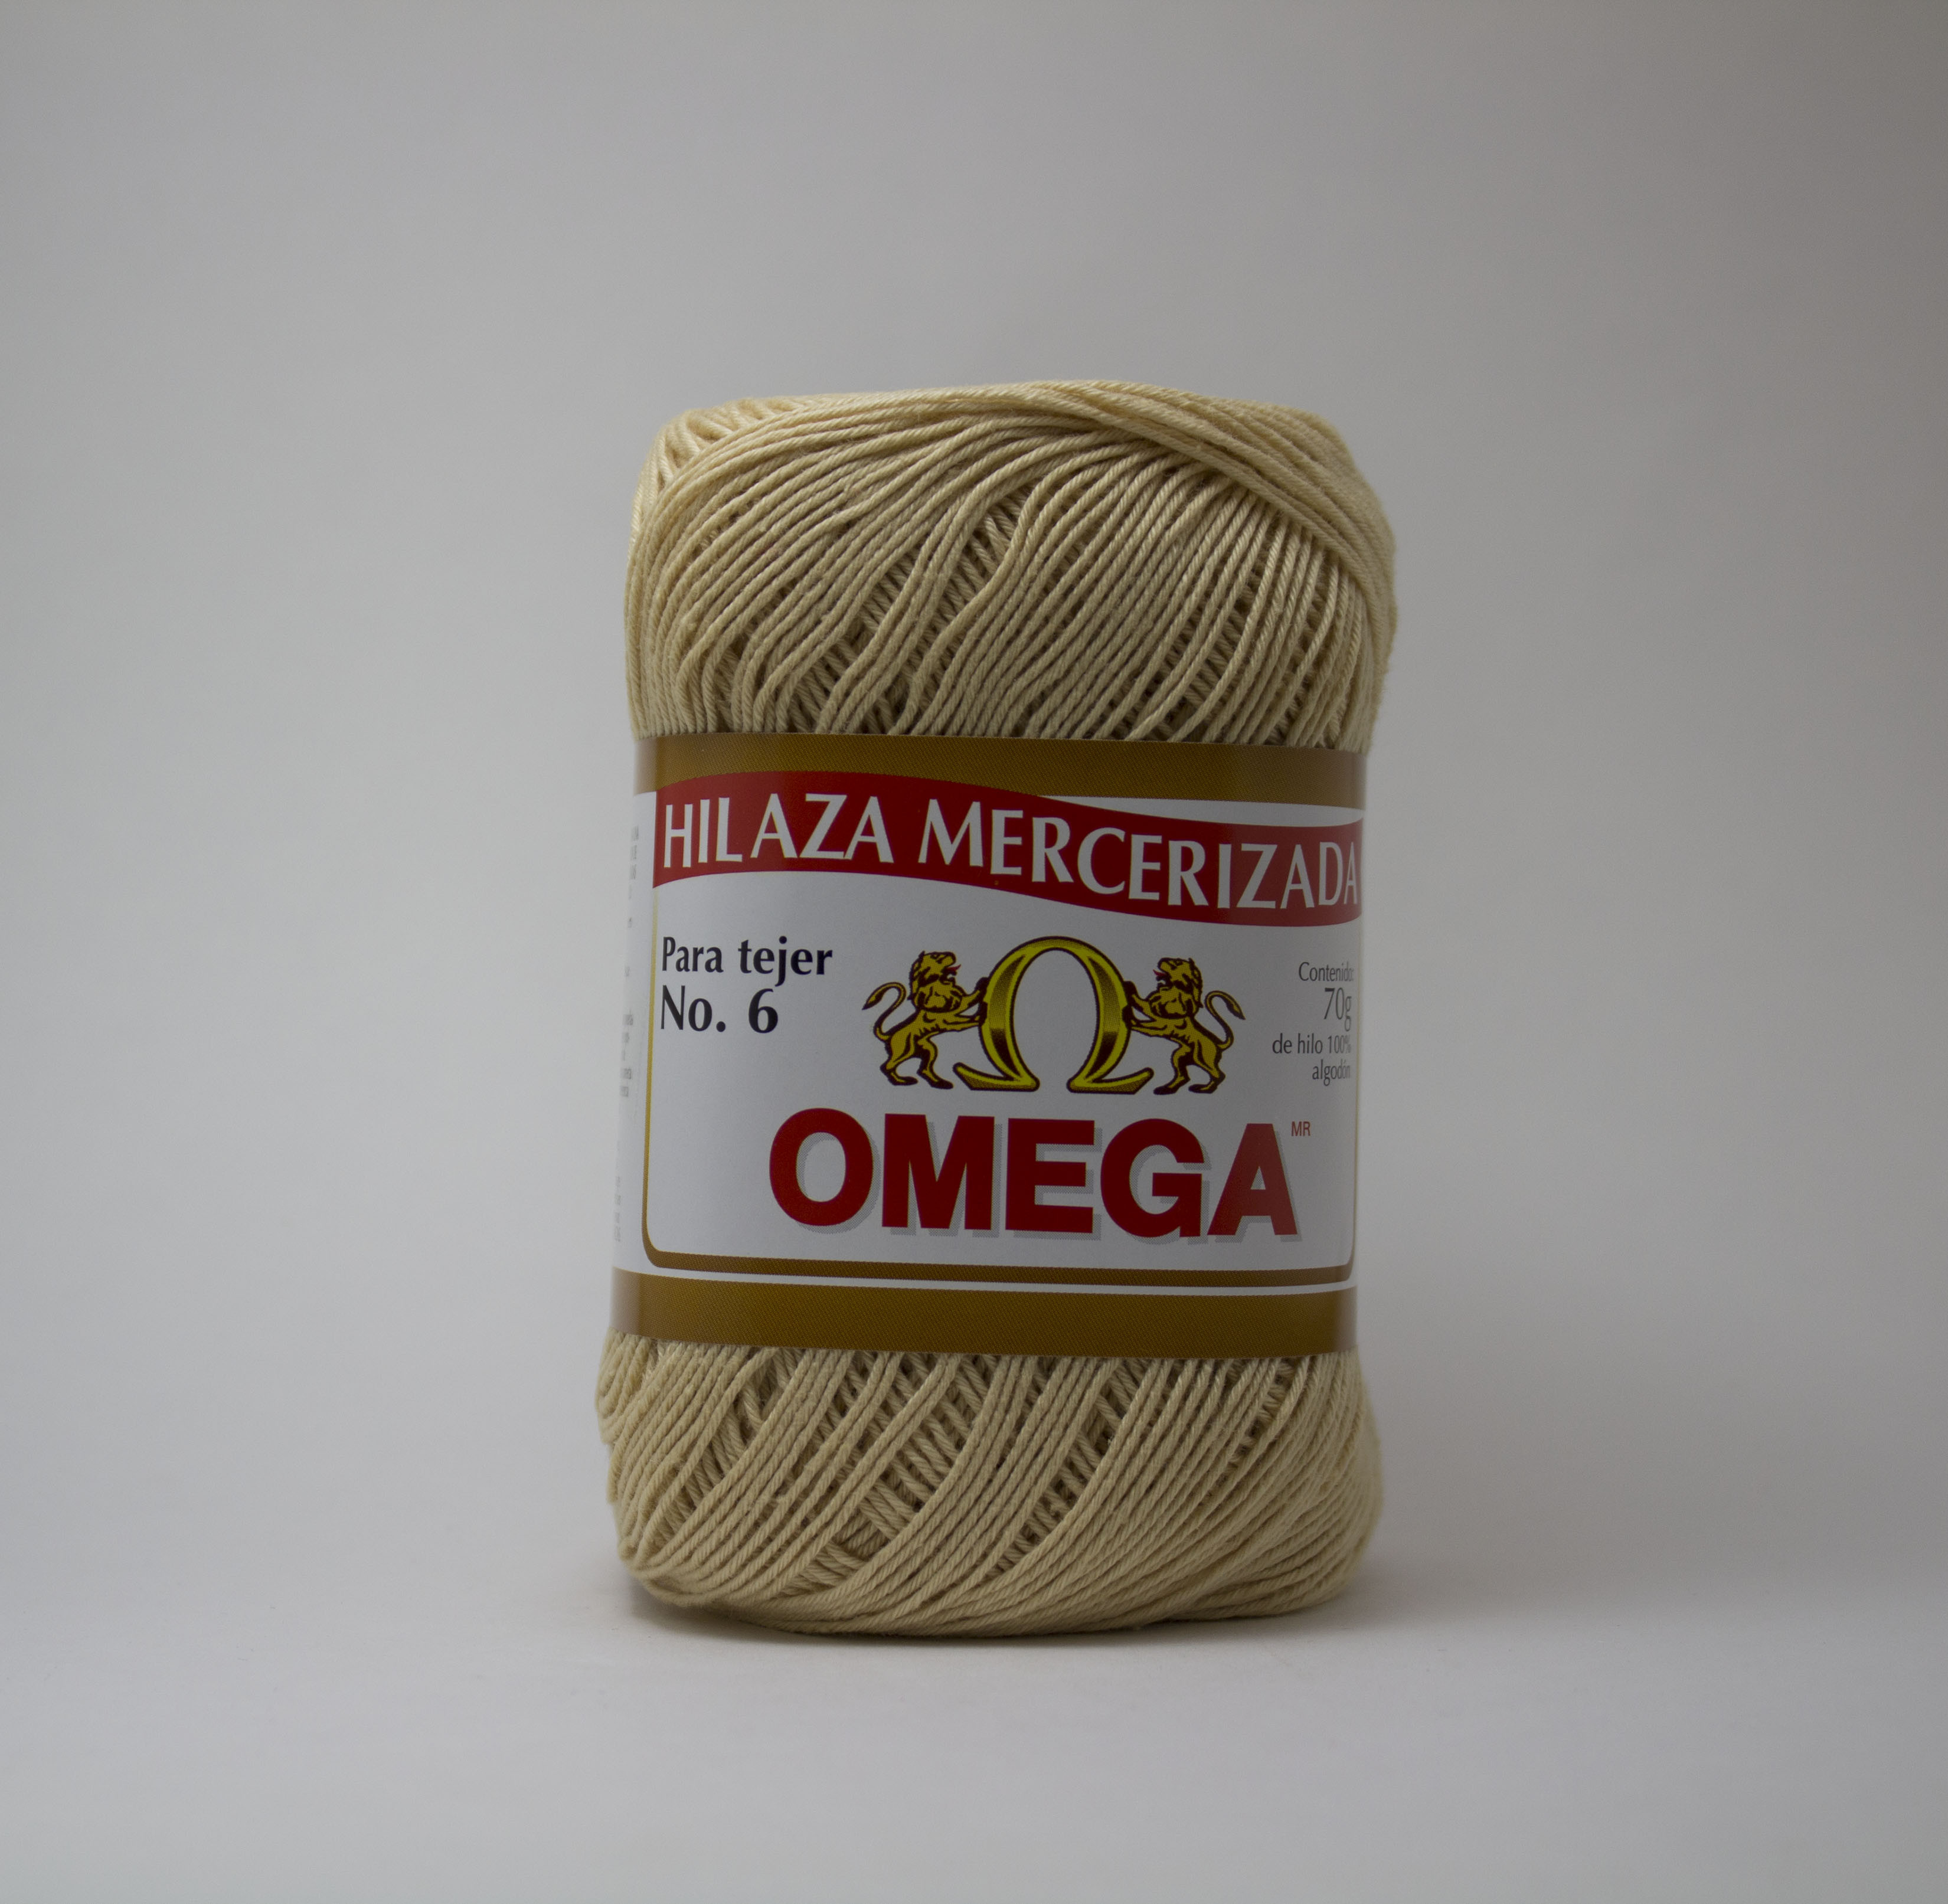 Omega Yarn New Hilaza Omega Yarns 6 Archives Of Awesome 49 Pictures Omega Yarn